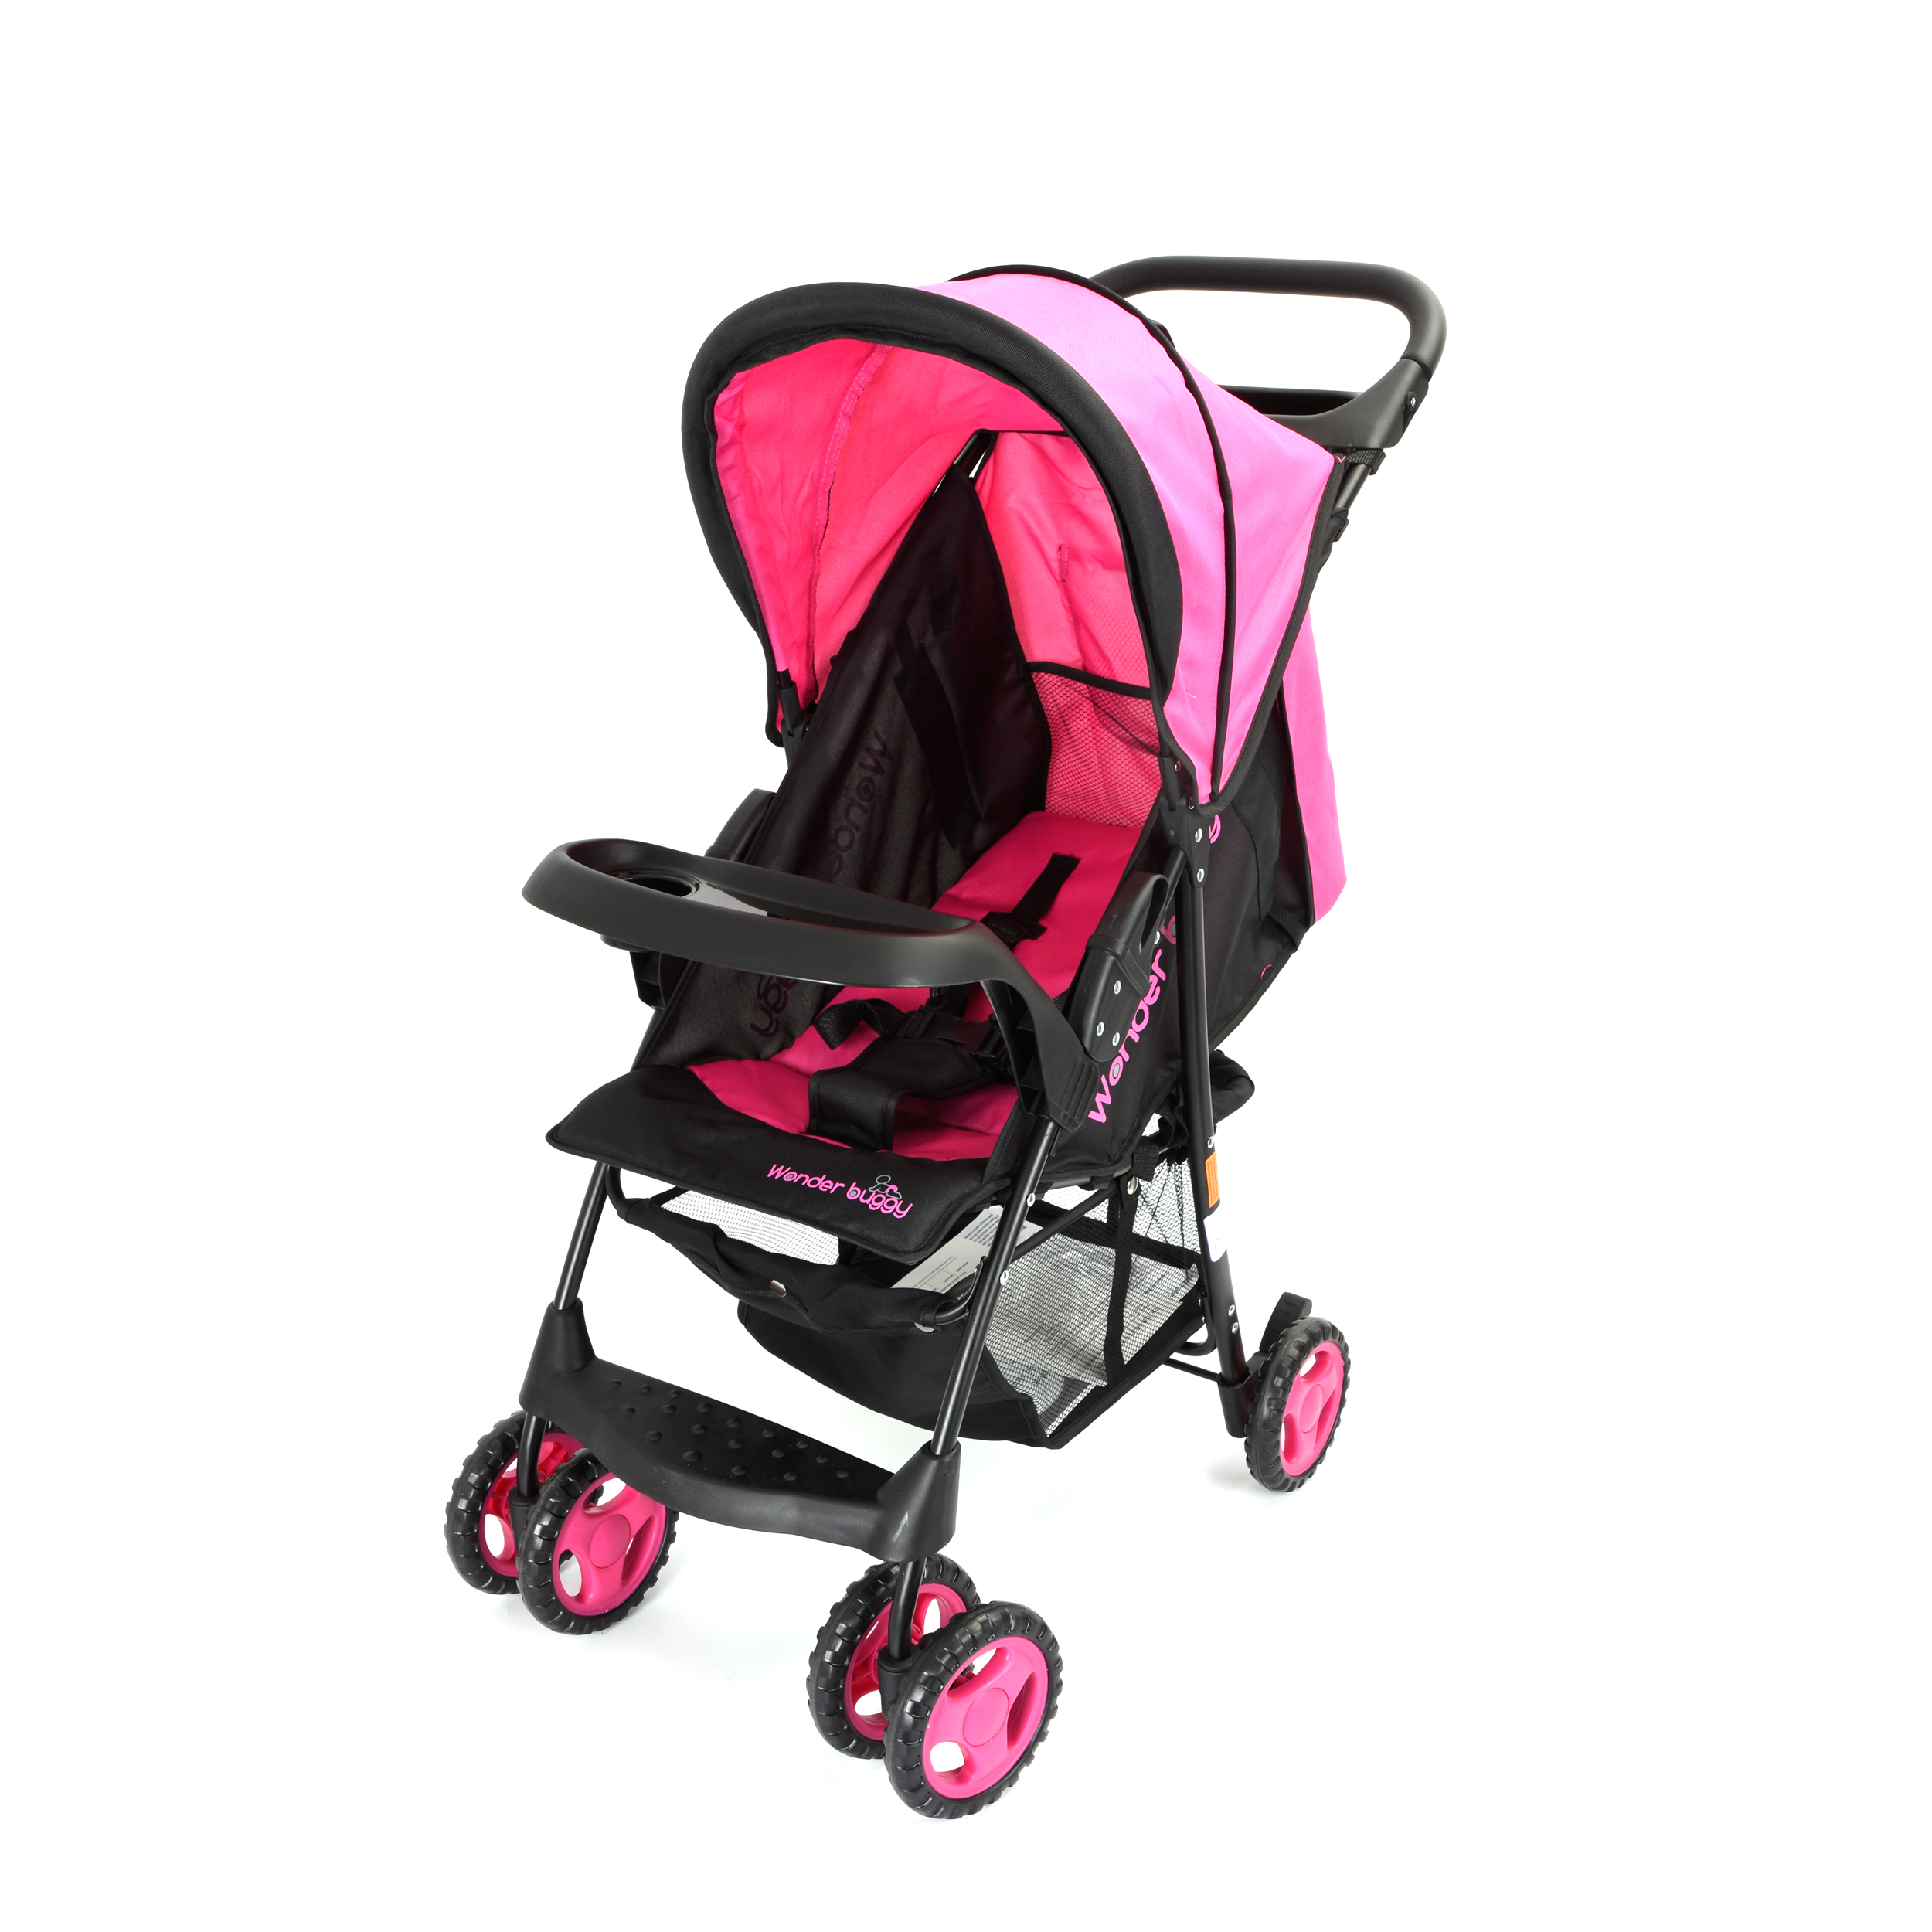 Wonder Buggy Roadmate Multi Position Compact Stroller With Canopy,Basket & Toy Tray - Black